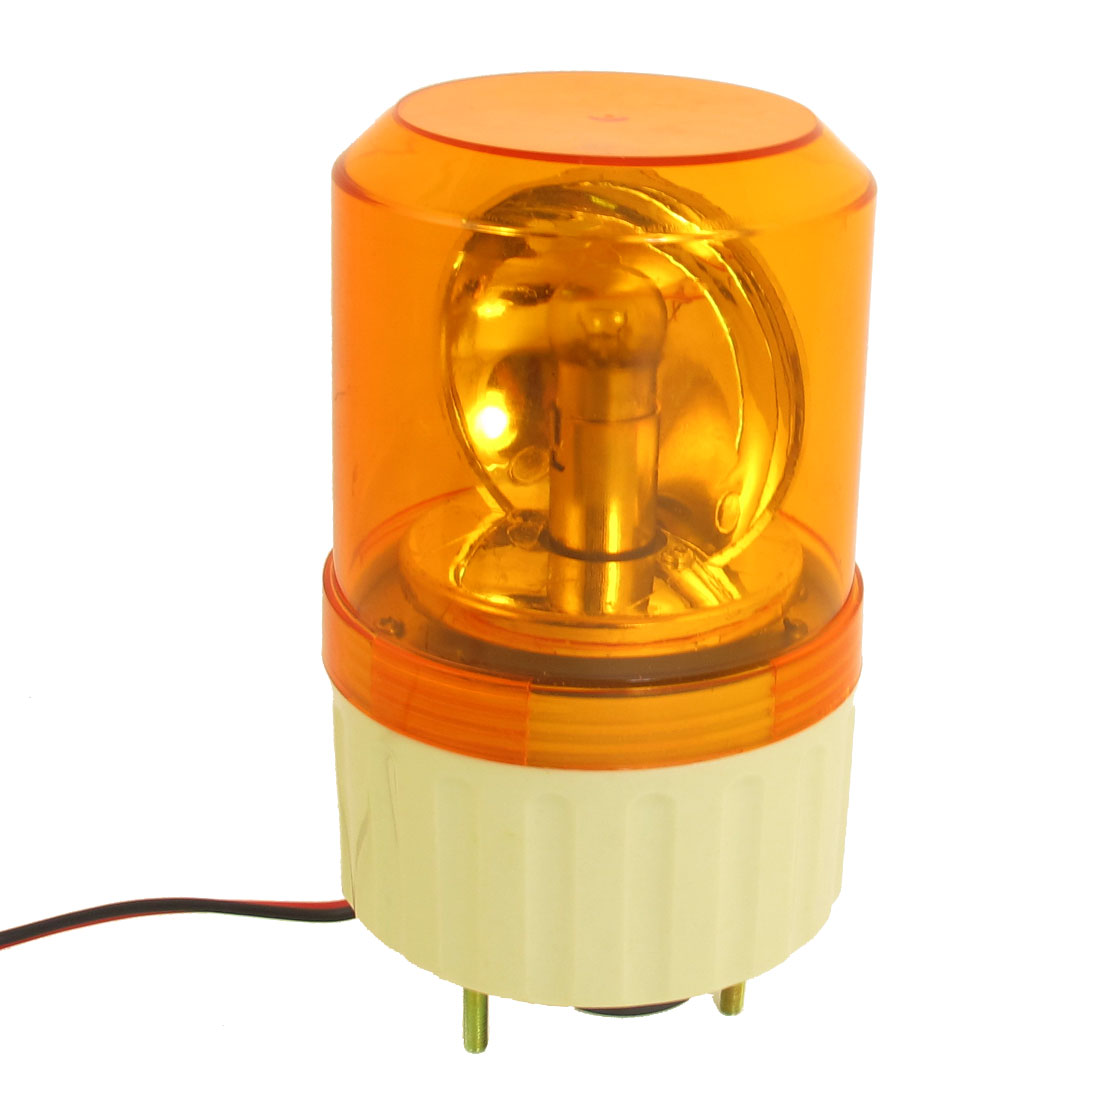 DC 12V Buzzer Sound Rotating Industrial Signal Warning Lamp Orange